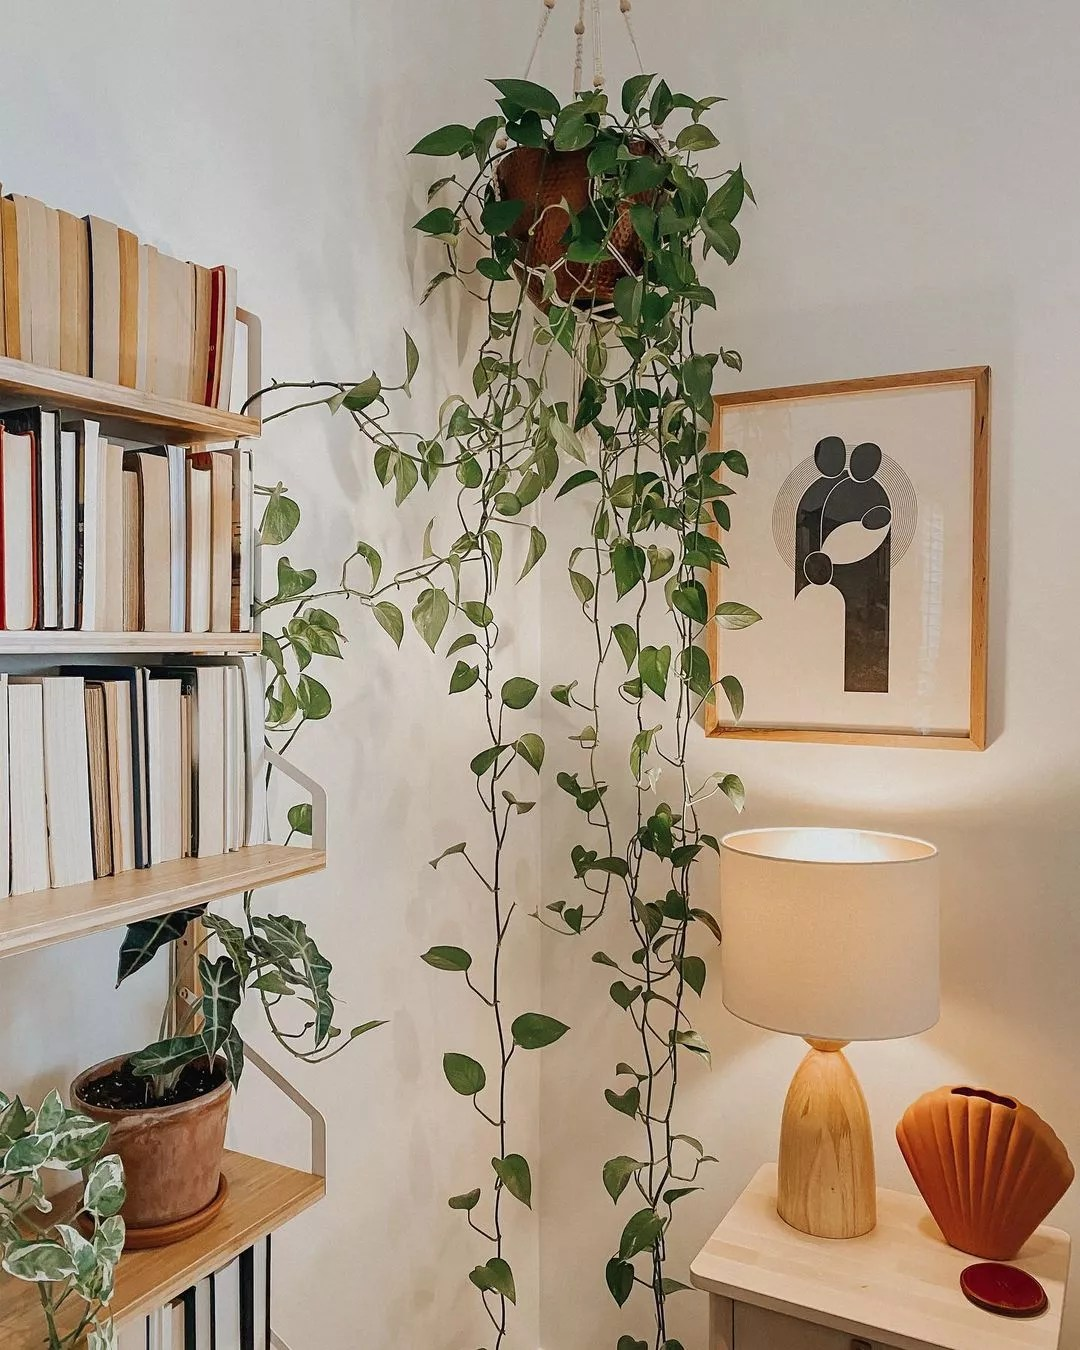 Corner of Japandi style room with a framed print and hanging pothos plant. Photo by Instagram user @coffeeandpoemss